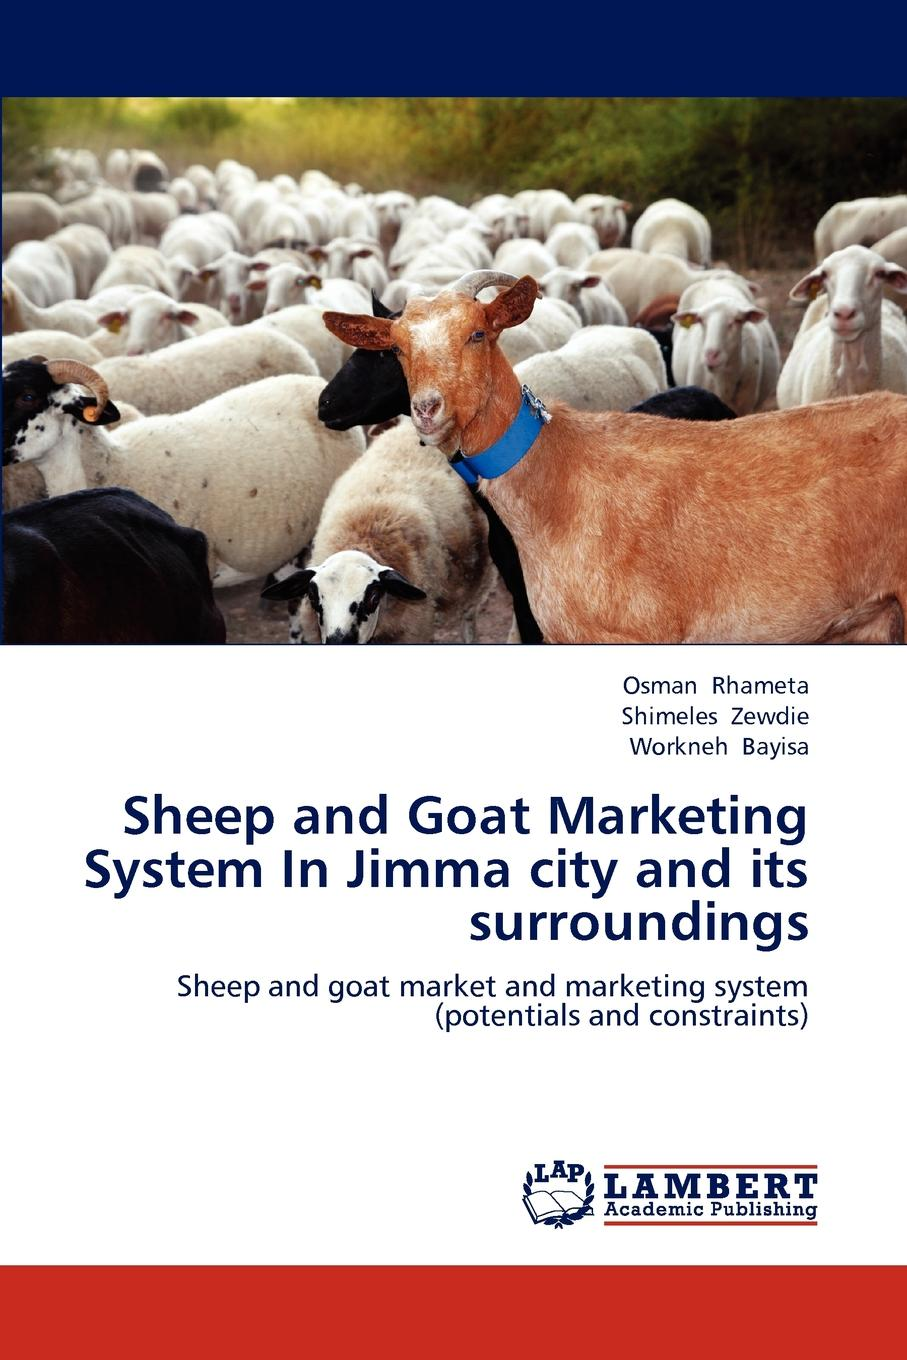 Osman Rhameta, Shimeles Zewdie, Workneh Bayisa Sheep and Goat Marketing System In Jimma city and its surroundings недорго, оригинальная цена